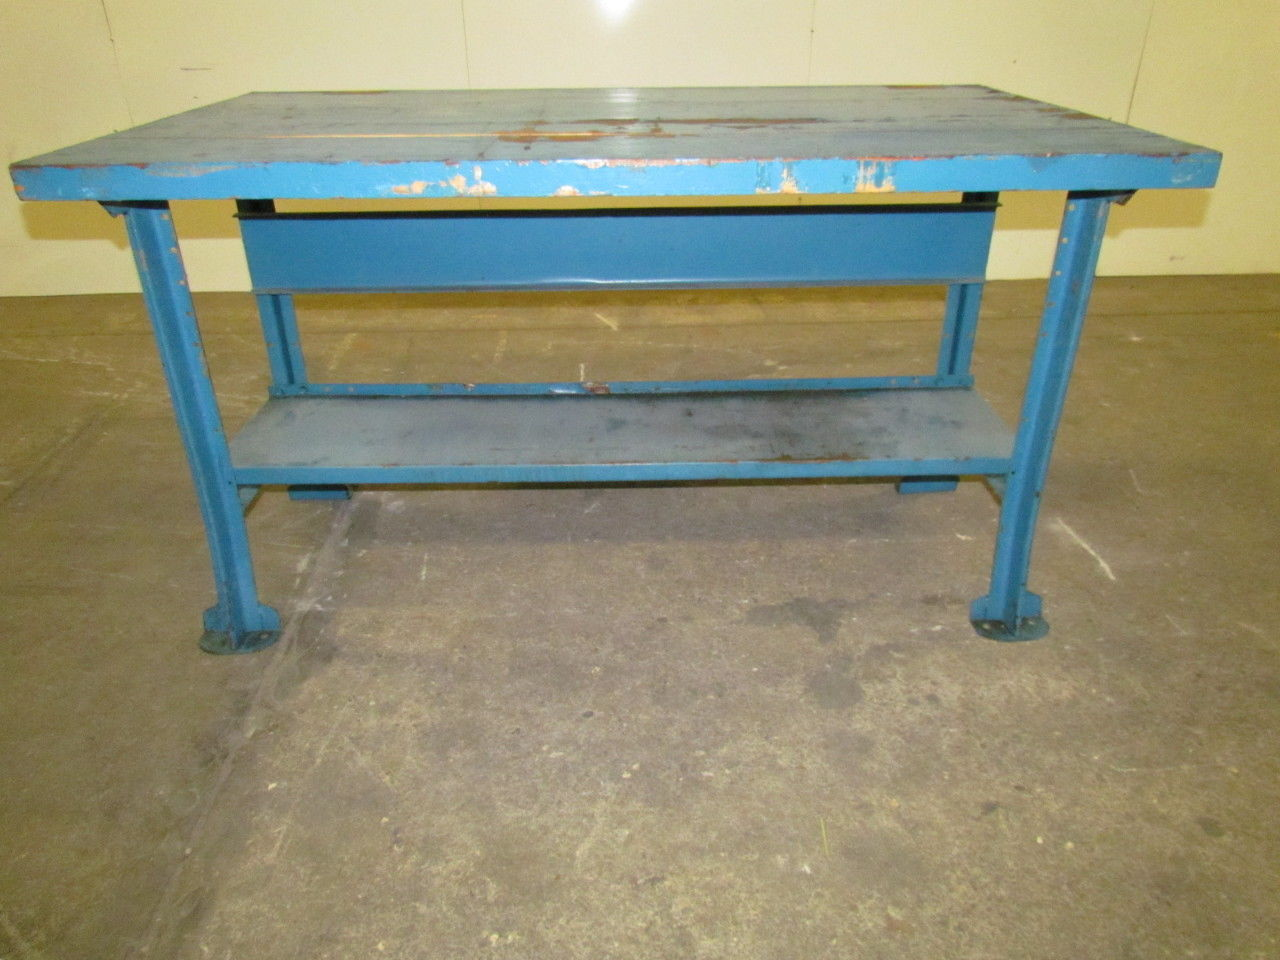 Vintage Industrial Butcher Block Workbench Table Reloading Bench 60x30x34